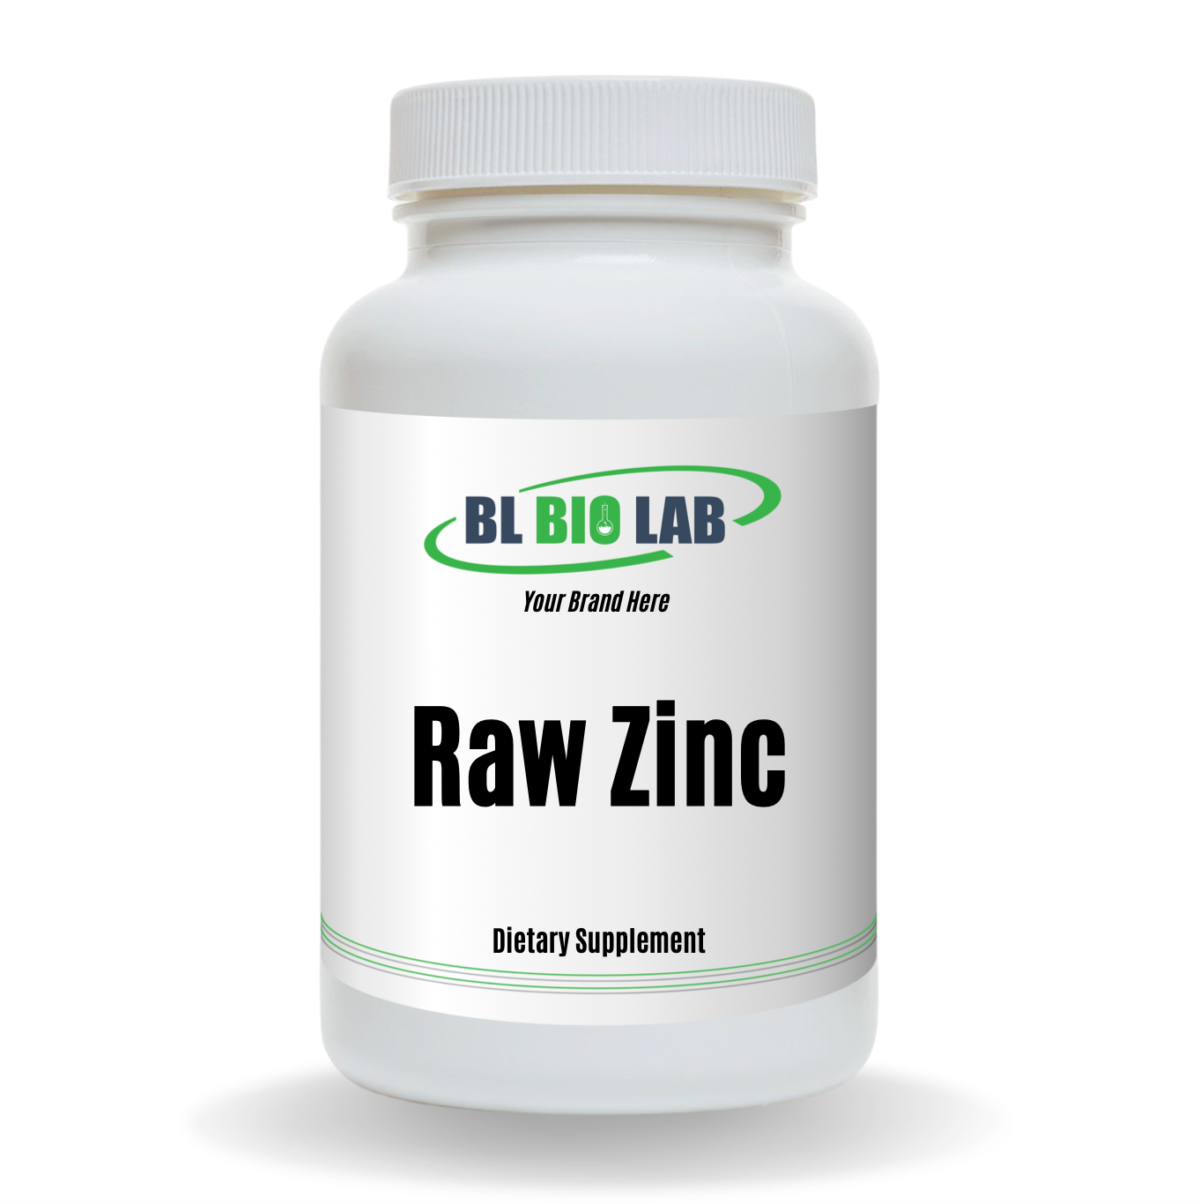 Private Label Raw Zinc Supplement Manufacturing